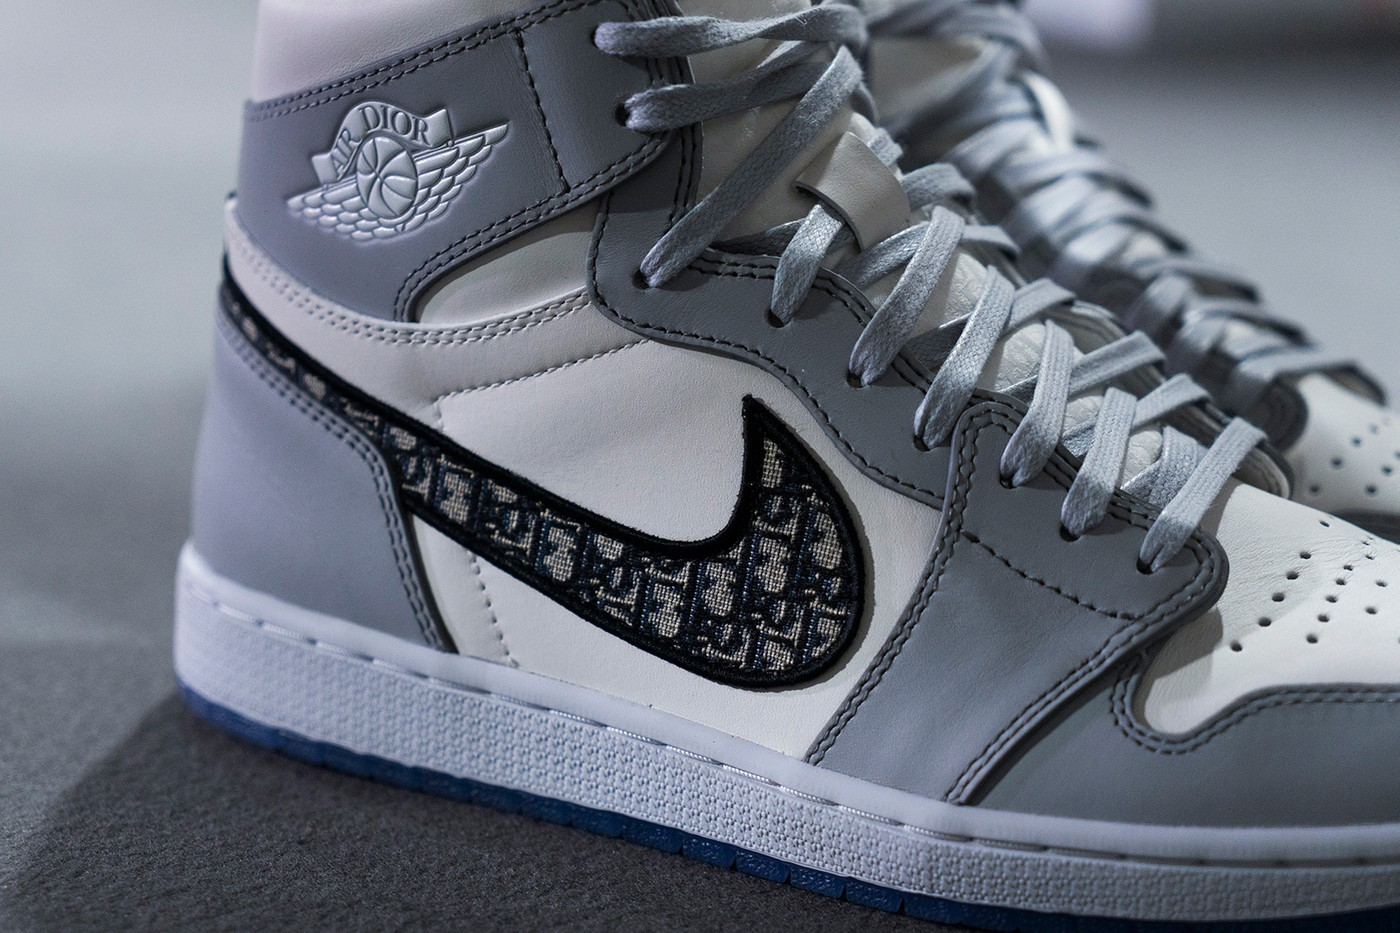 when did the first pair of air jordans come out